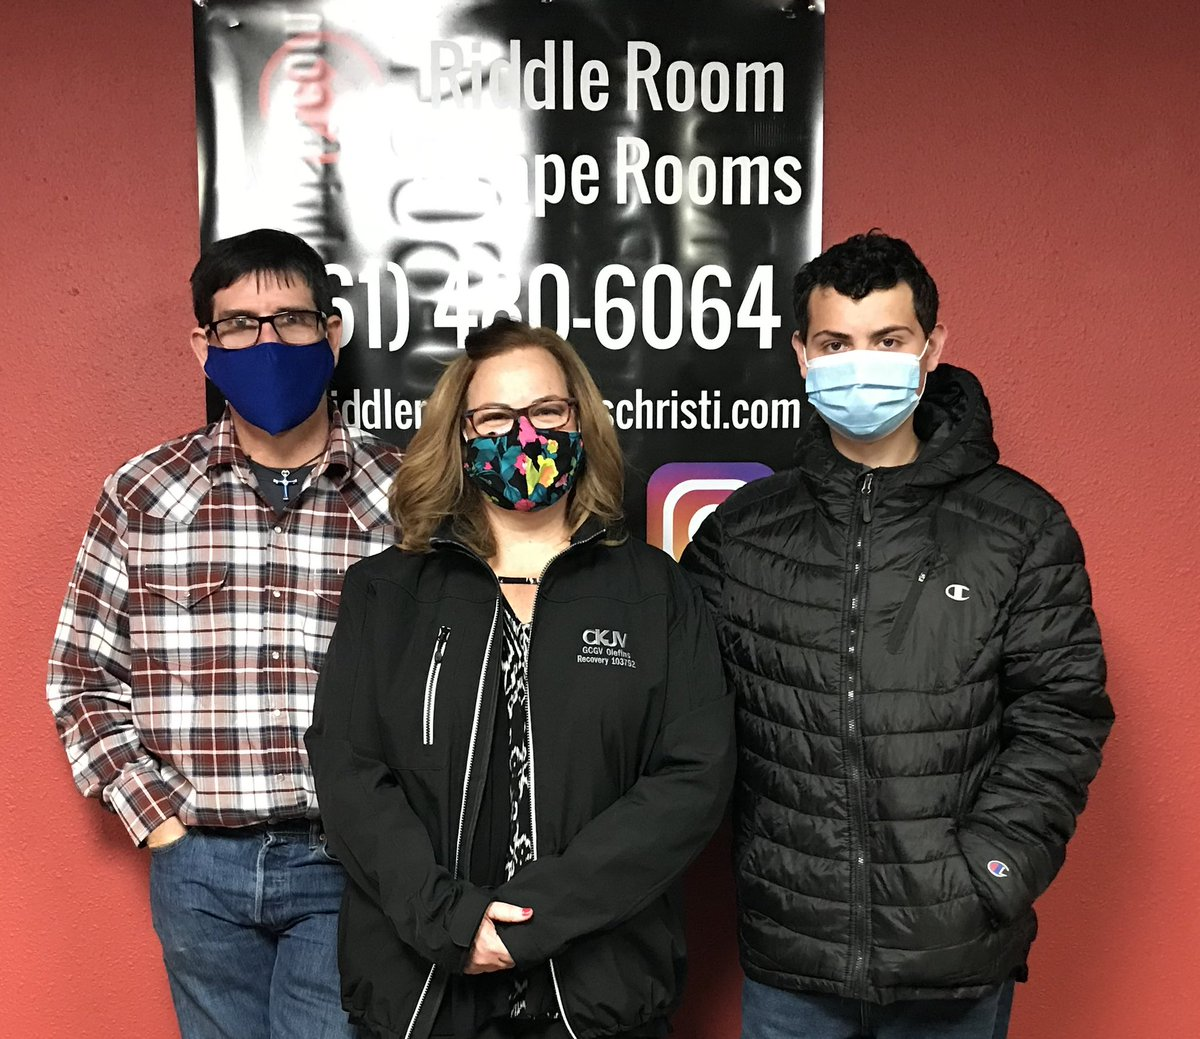 Congrats to this group for solving The Mystery of The Hidden Cellar and beating the clock. ##riddleroomrevolution #bookitnow #takethechallenge #escapeartists